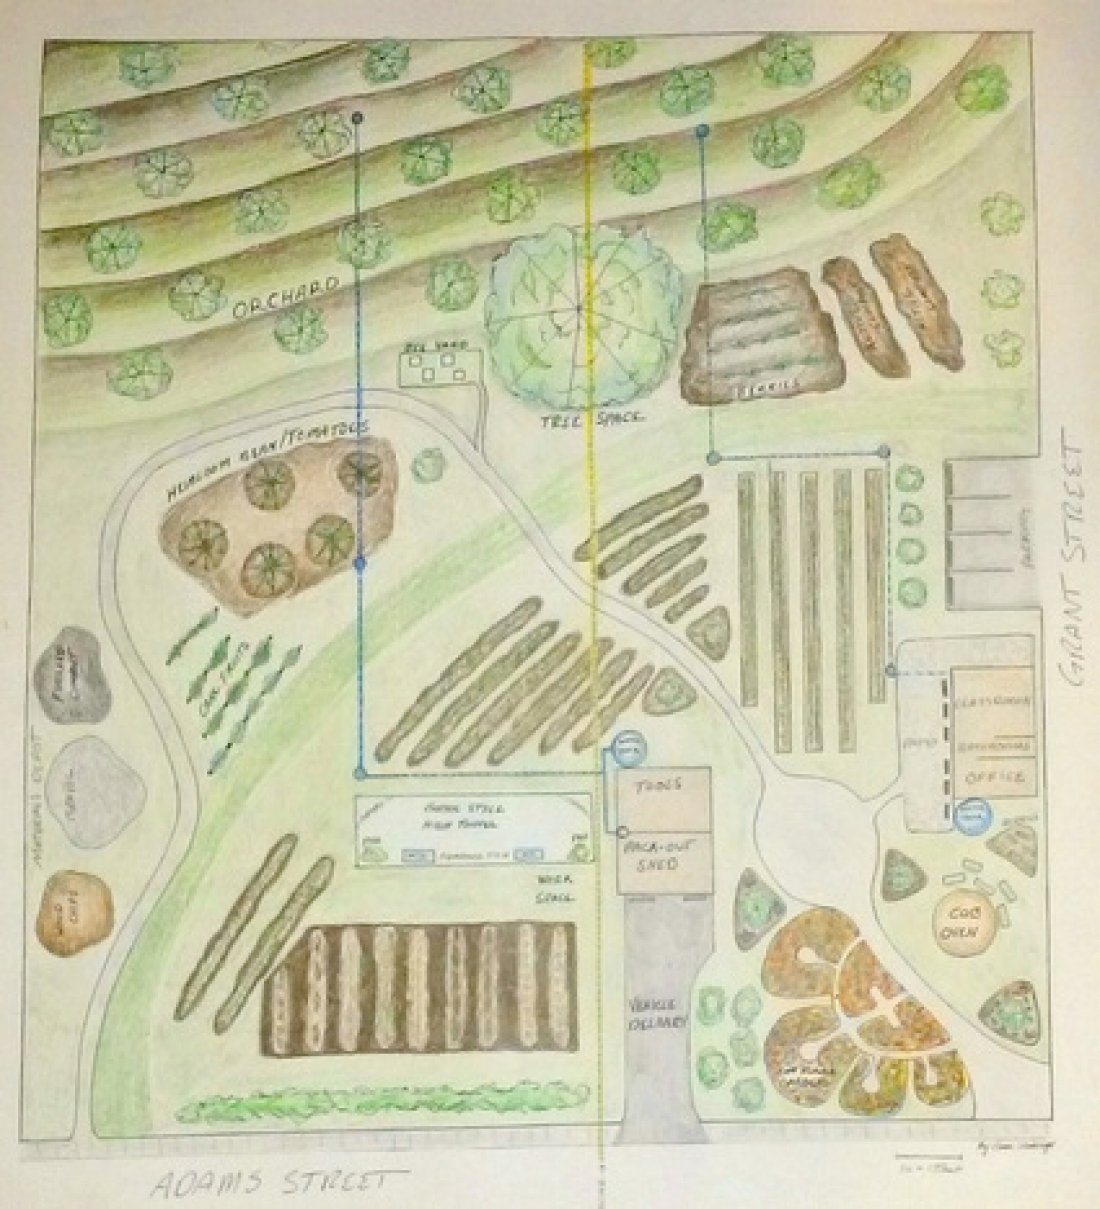 The original plan for the farm